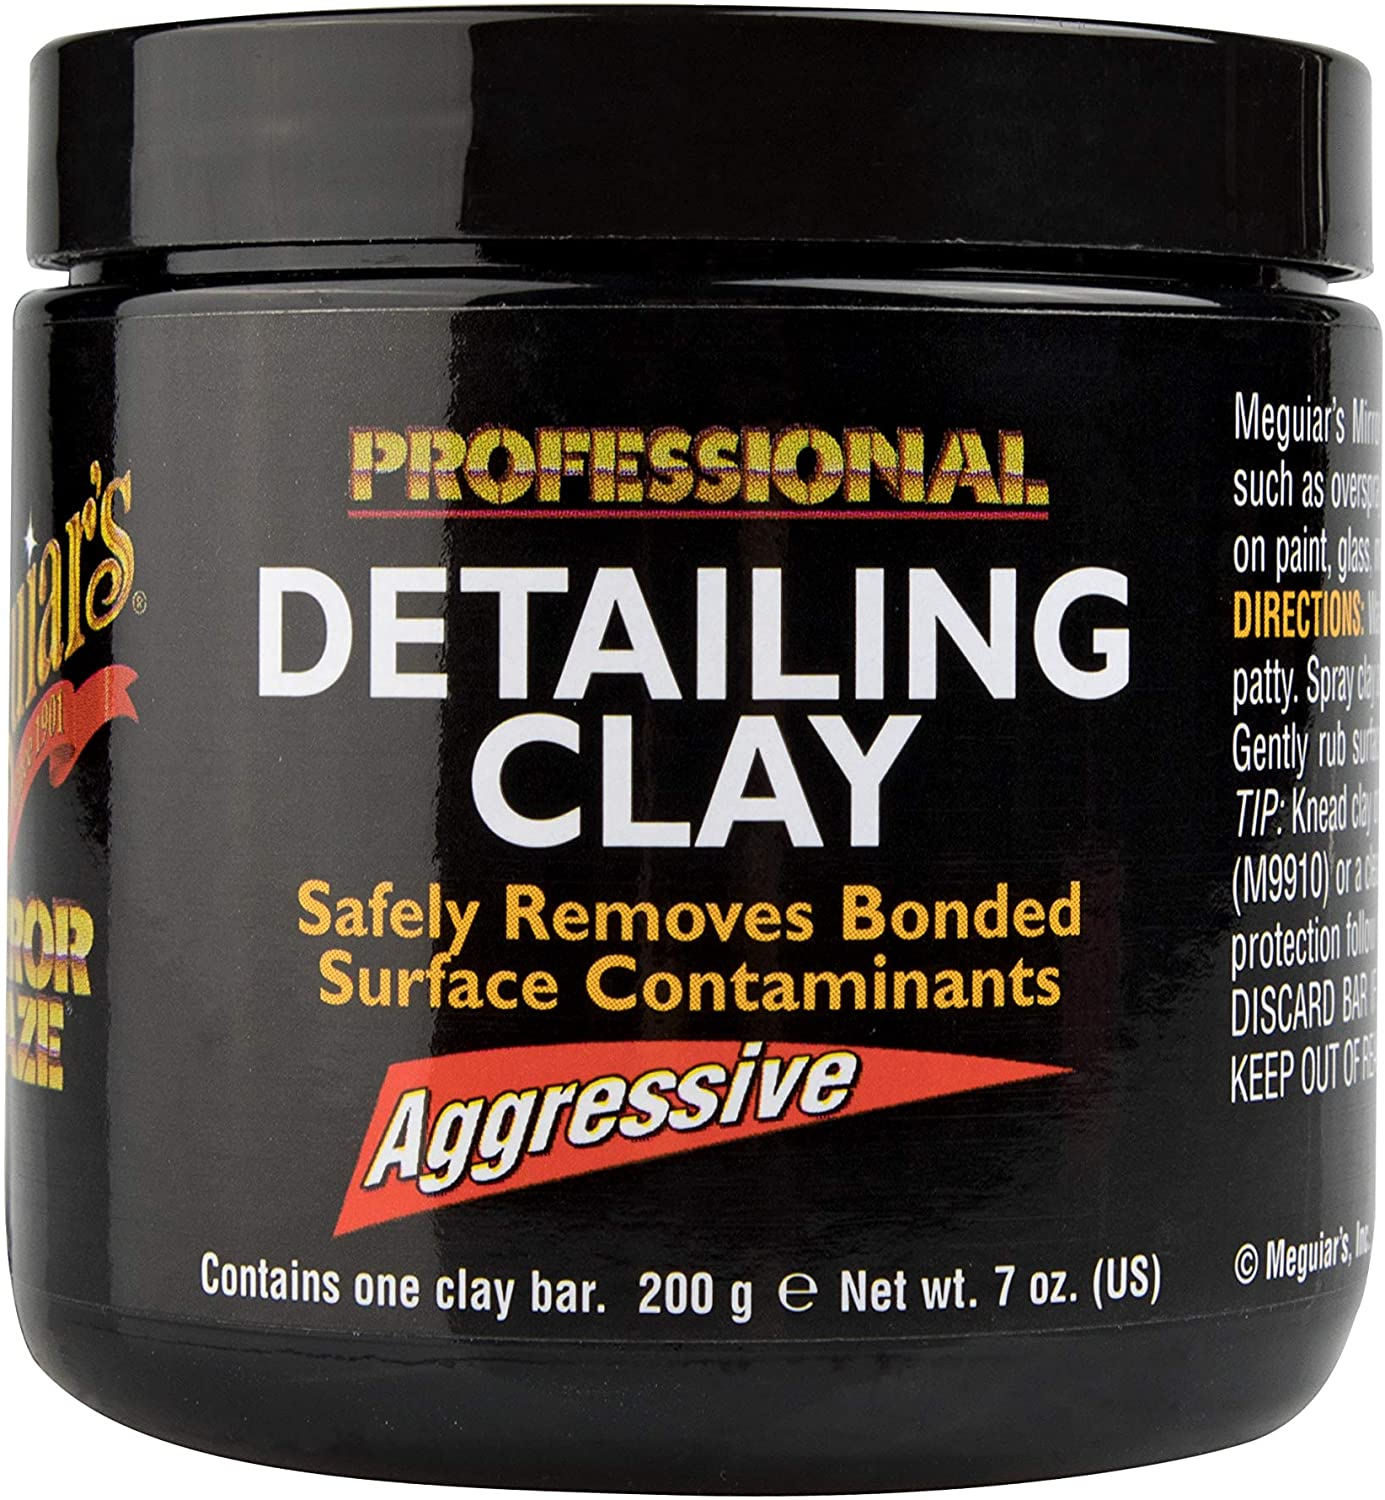 Meguiar's Mirror Glaze Detailing Surprise price – Clay Aggressive All items in the store Re